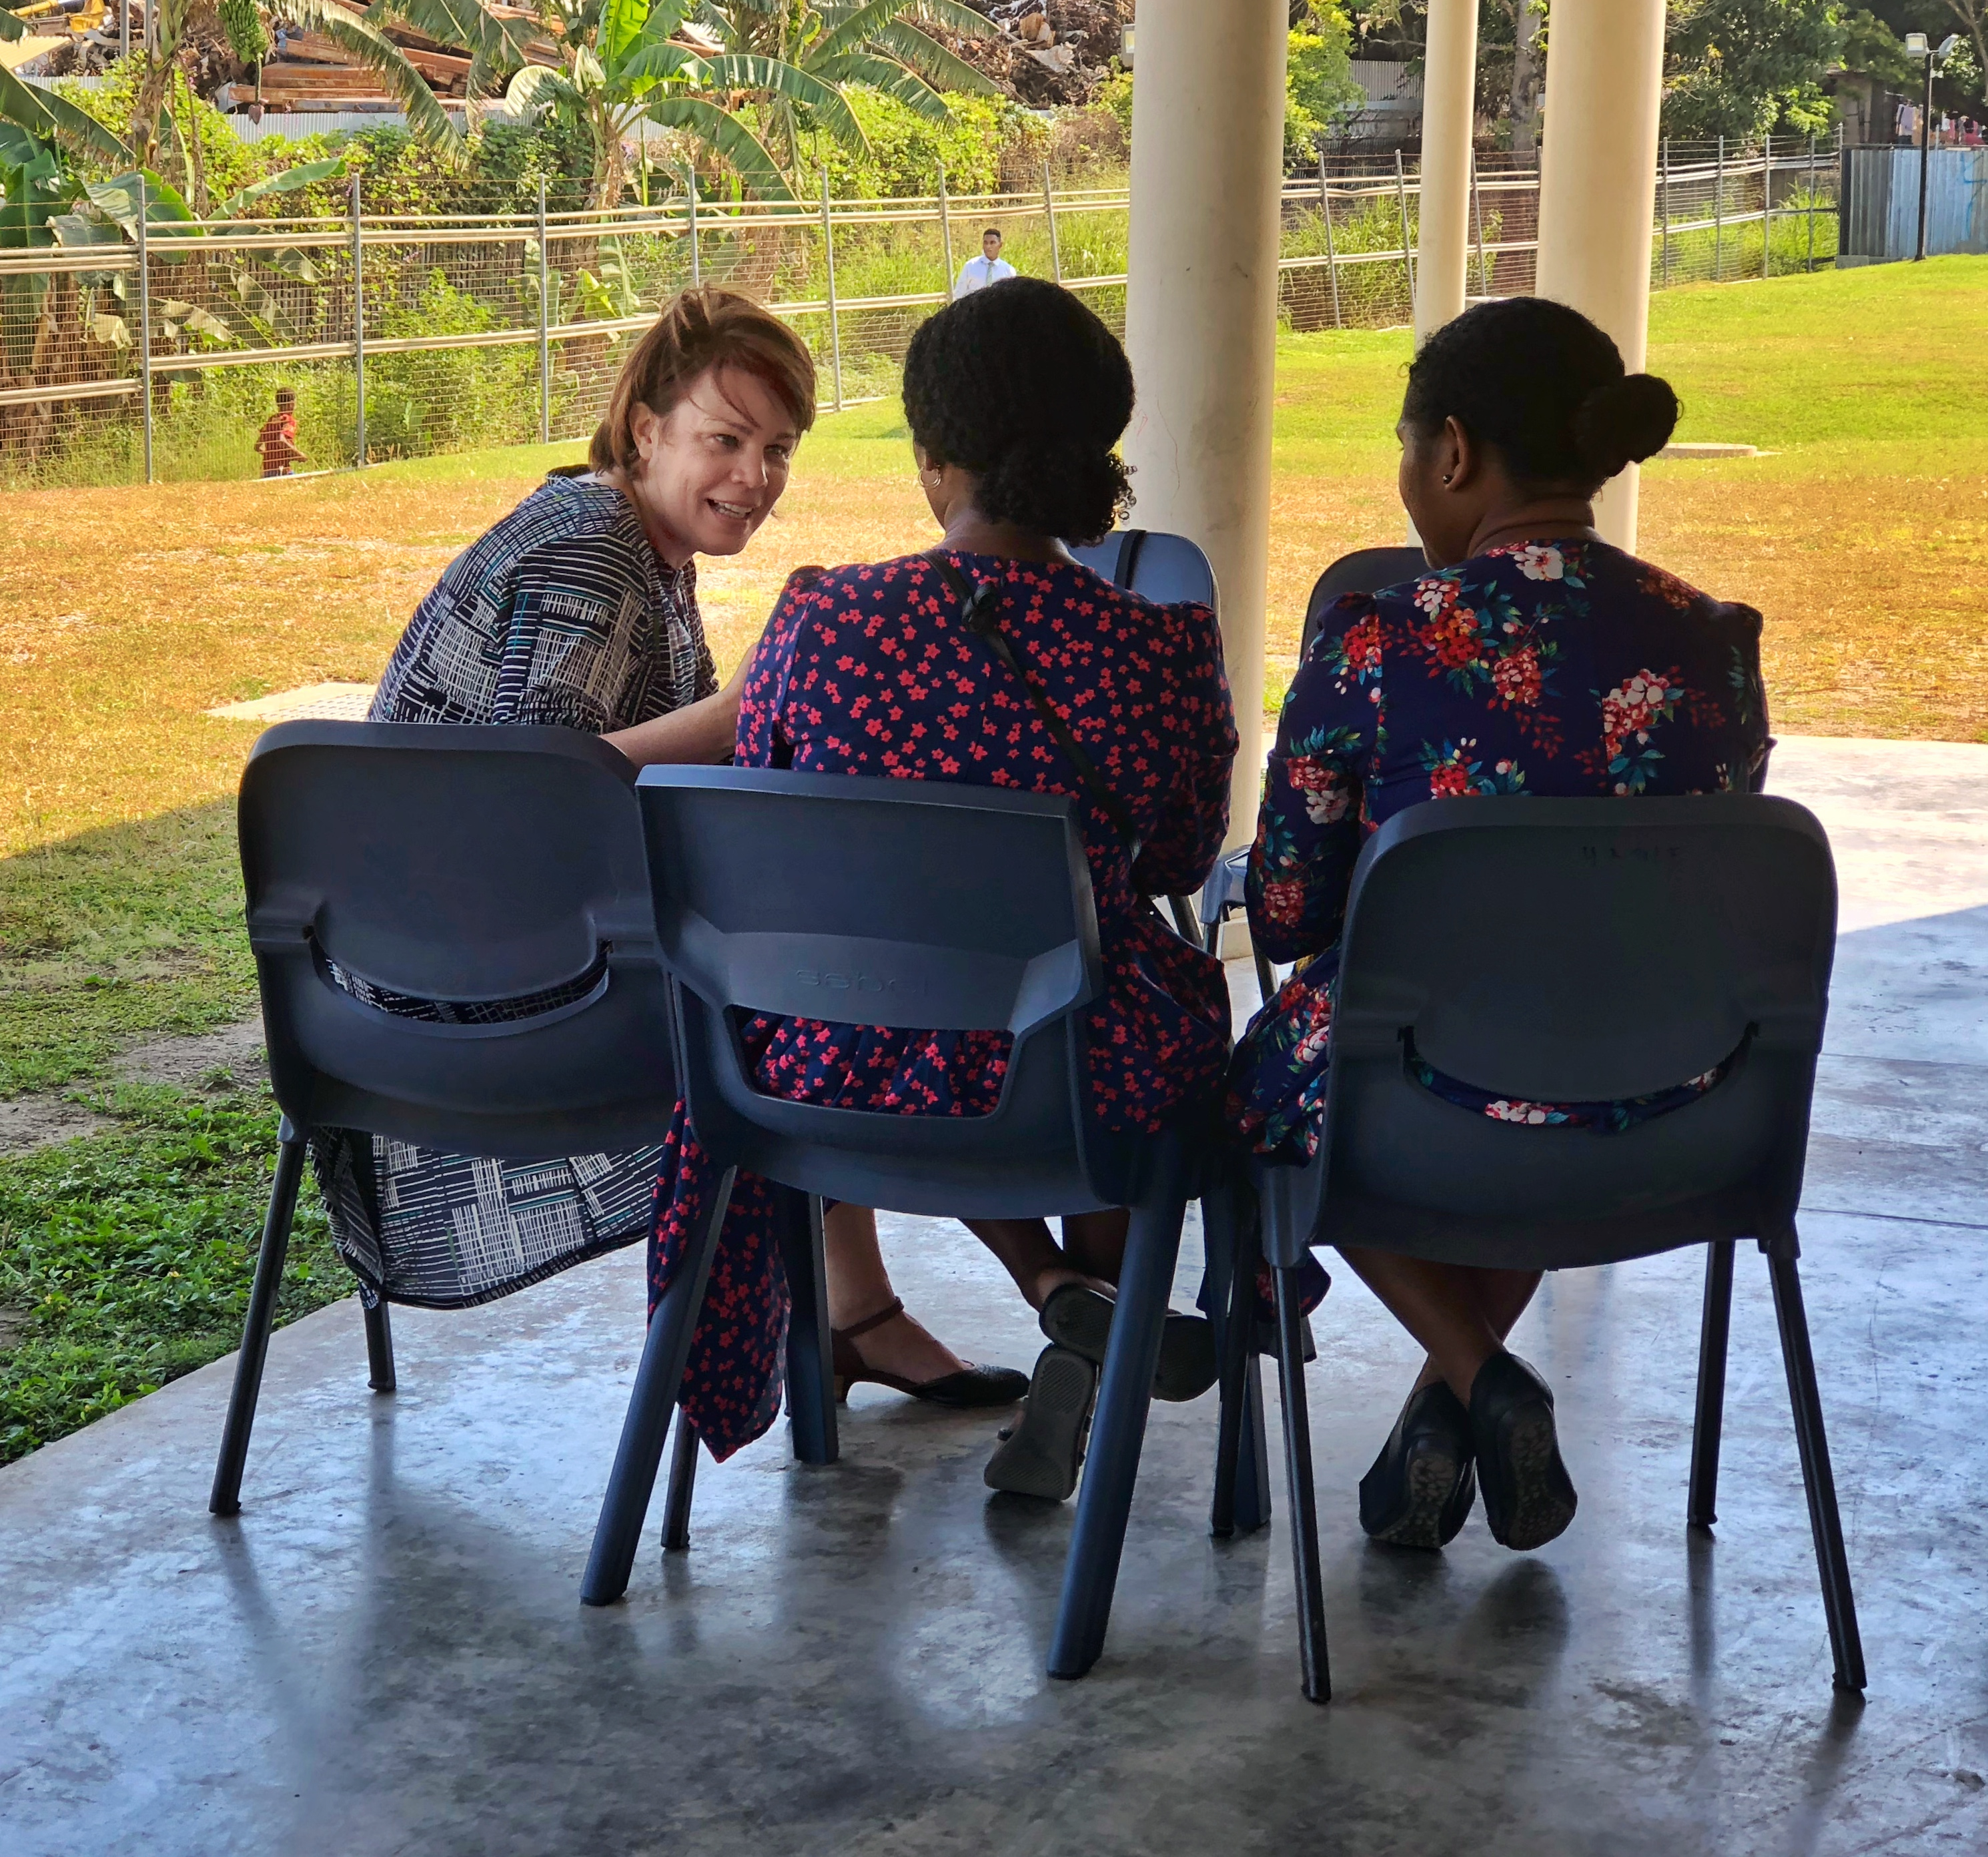 Sister Sharon Eubank meets with members from the Port Moresby Papua New Guinea Stake and the Gerehu and Rigo districts in Papua New Guinea during a visit to the Pacific Area in October 2019.